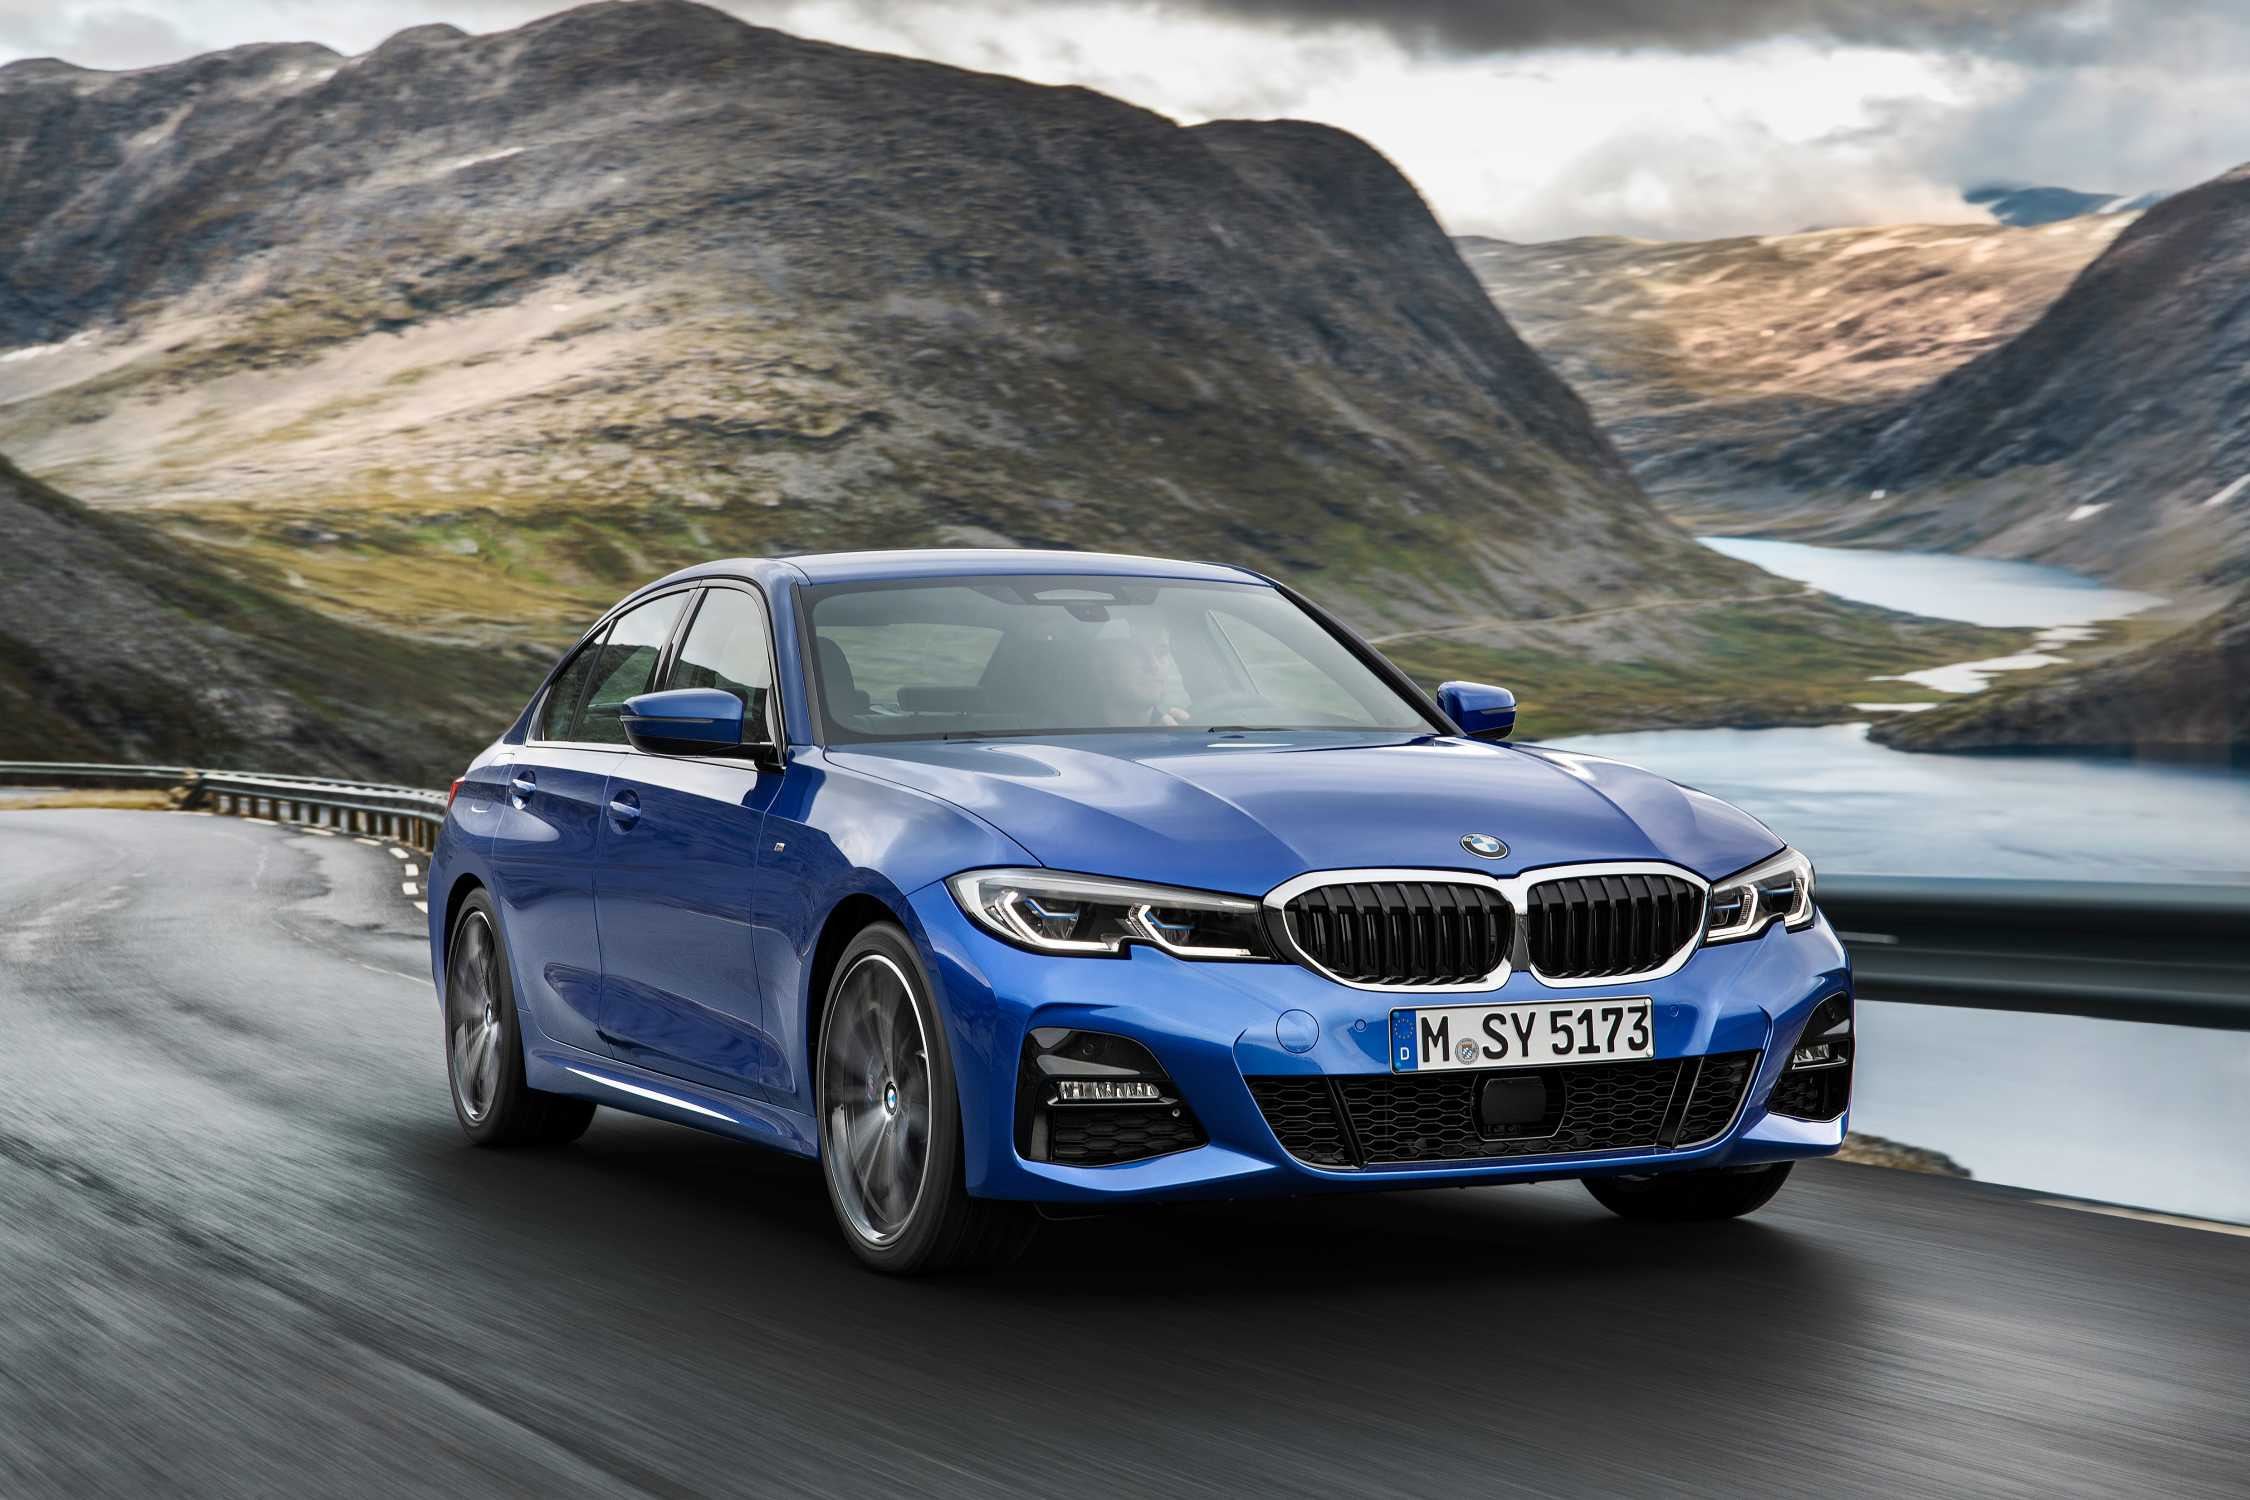 P90323664-the-all-new-bmw-3-series-sedan-model-m-sport-portimao-blue-metallic-rim-19-styling-791-m-10-2018-2250px